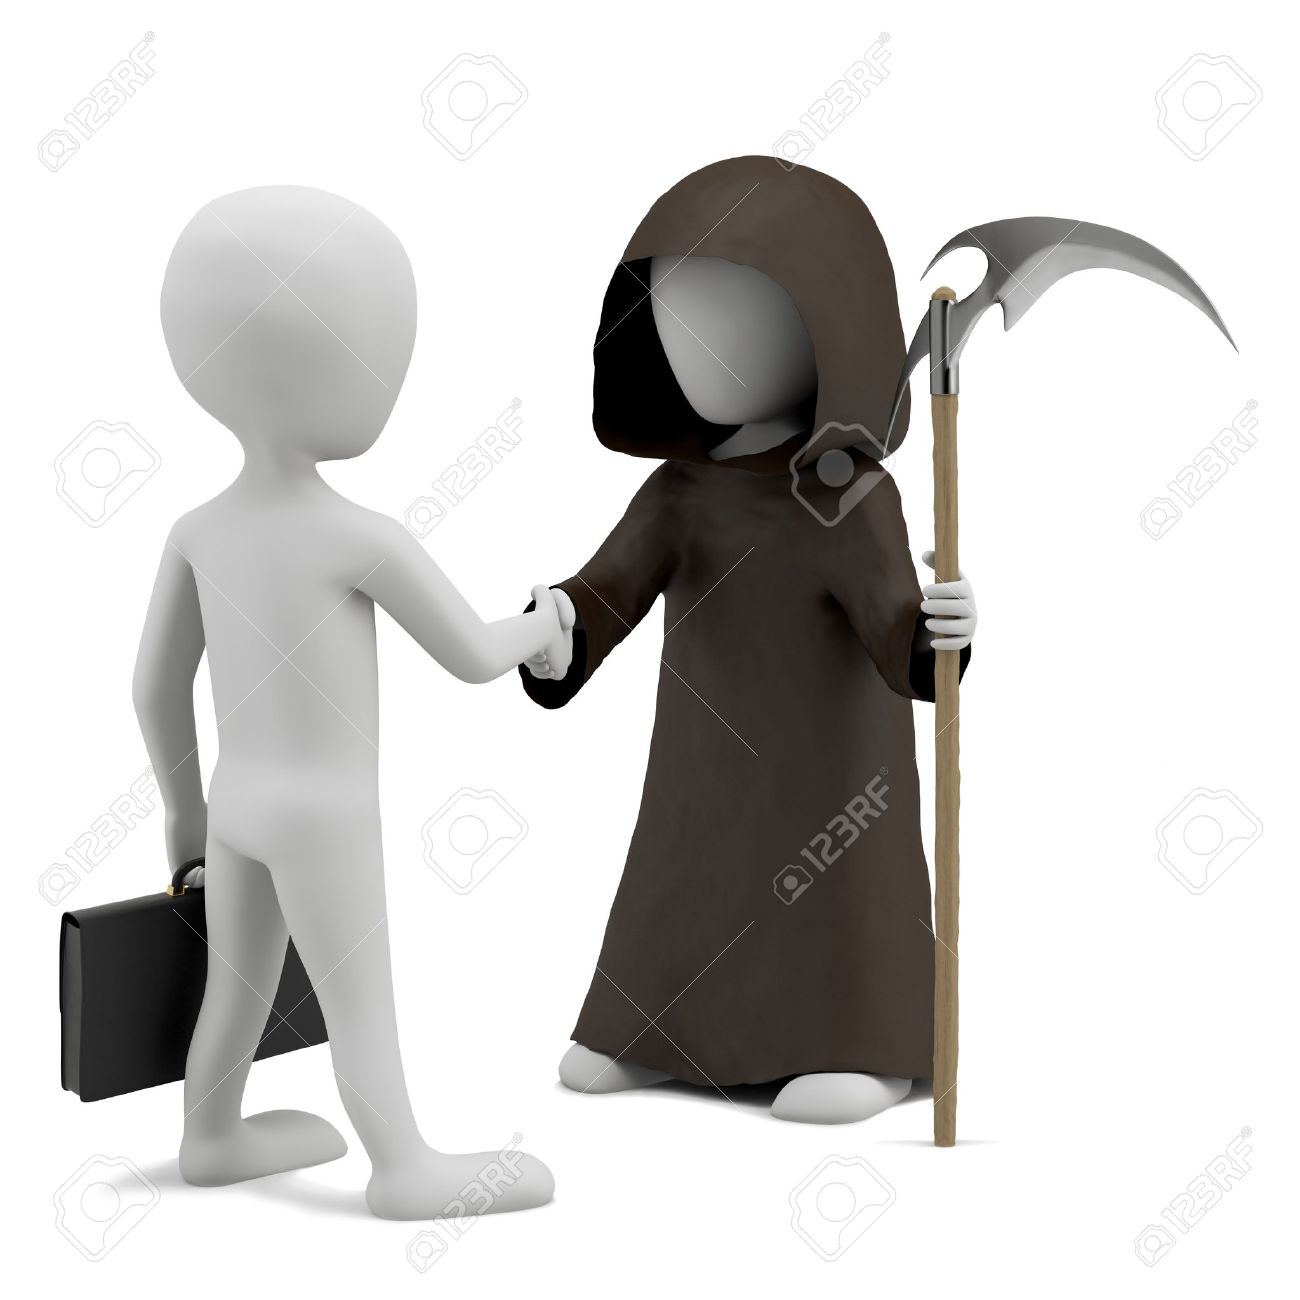 Shaking Hands With Death 3d Image On A White Background Stock Photo